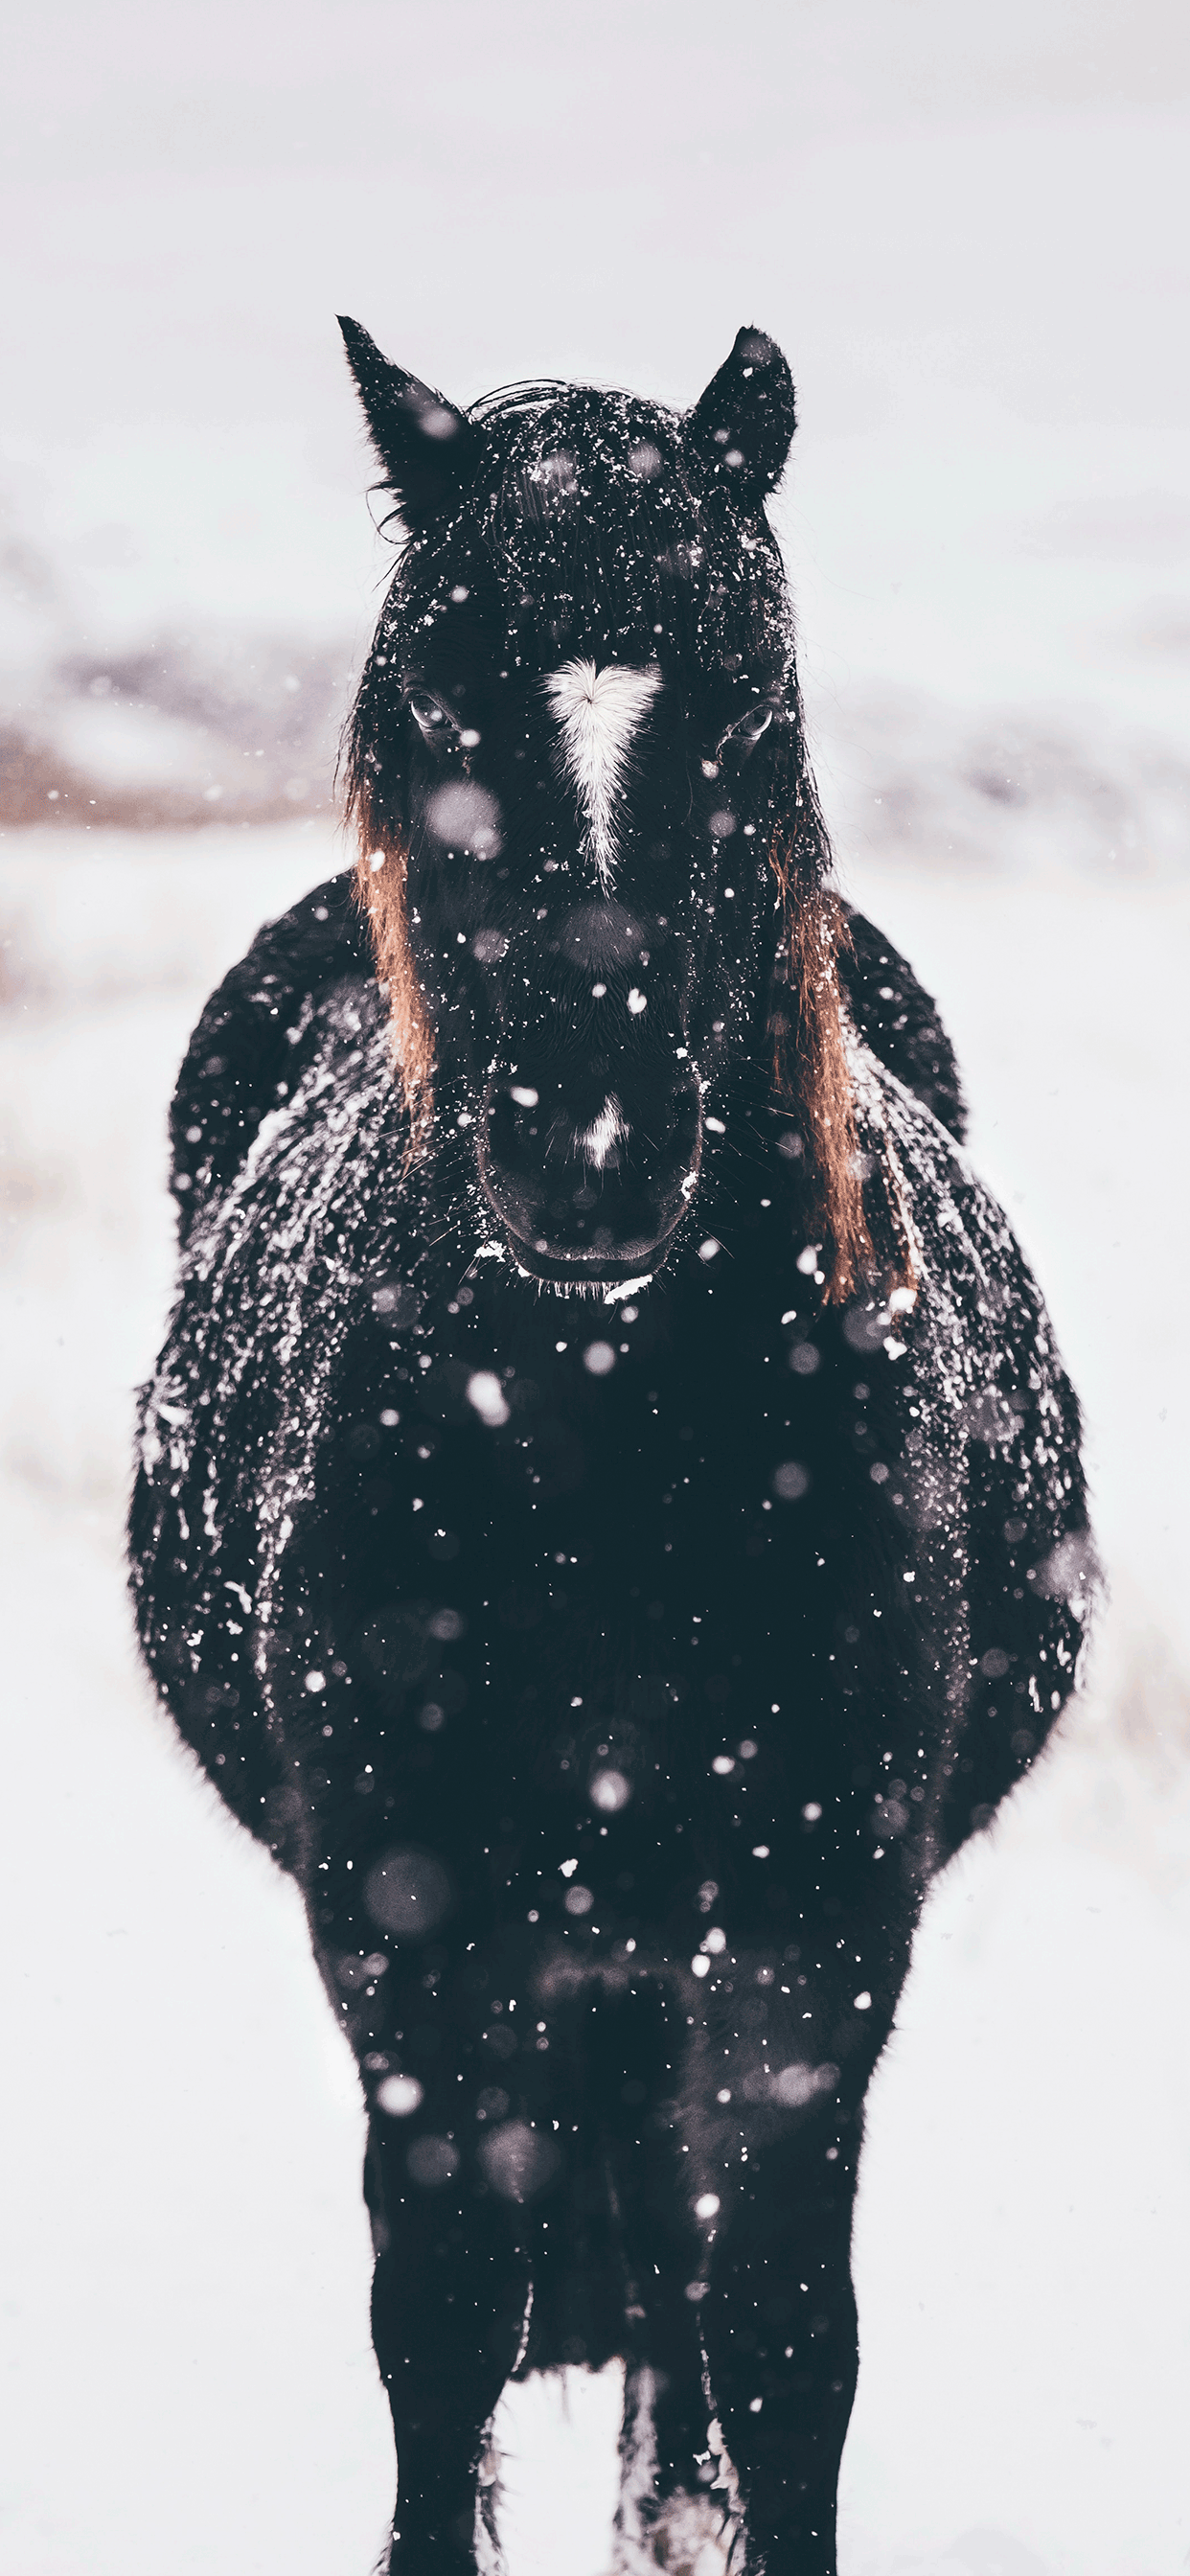 iPhone wallpaper winter black horse Fonds d'écran iPhone du 30/10/2018